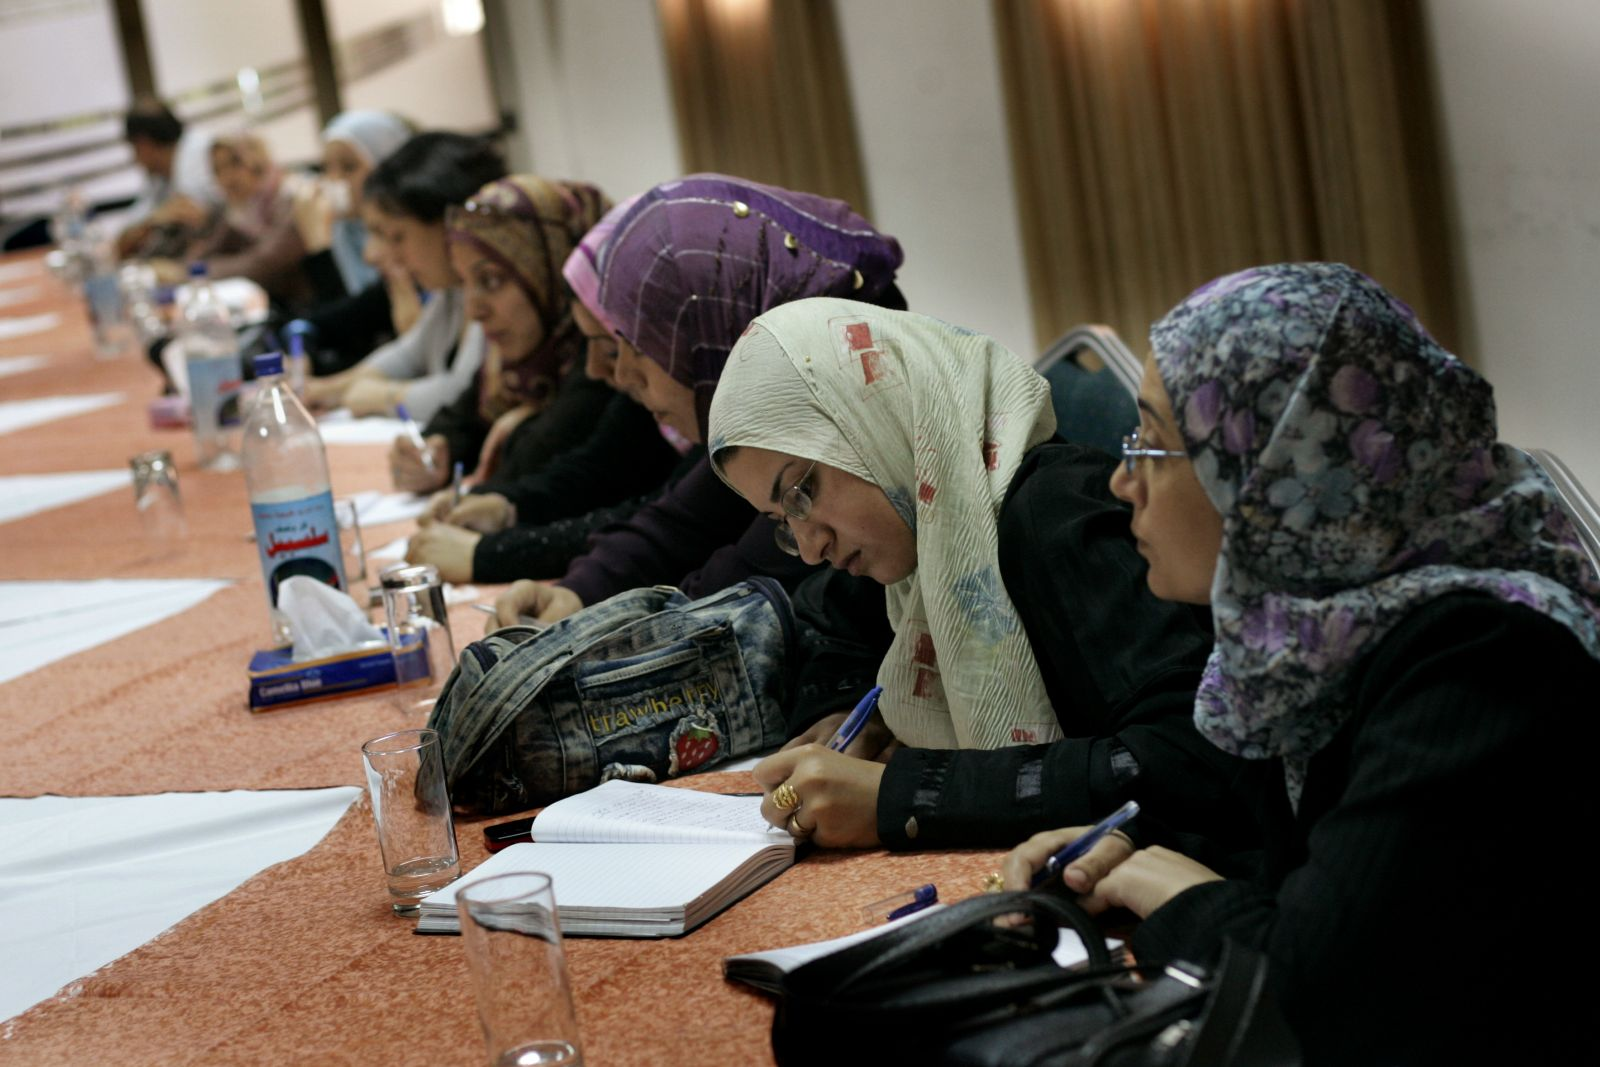 Women's rights must not be traded away at EU-Middle East ministerial conference warns CARE International.